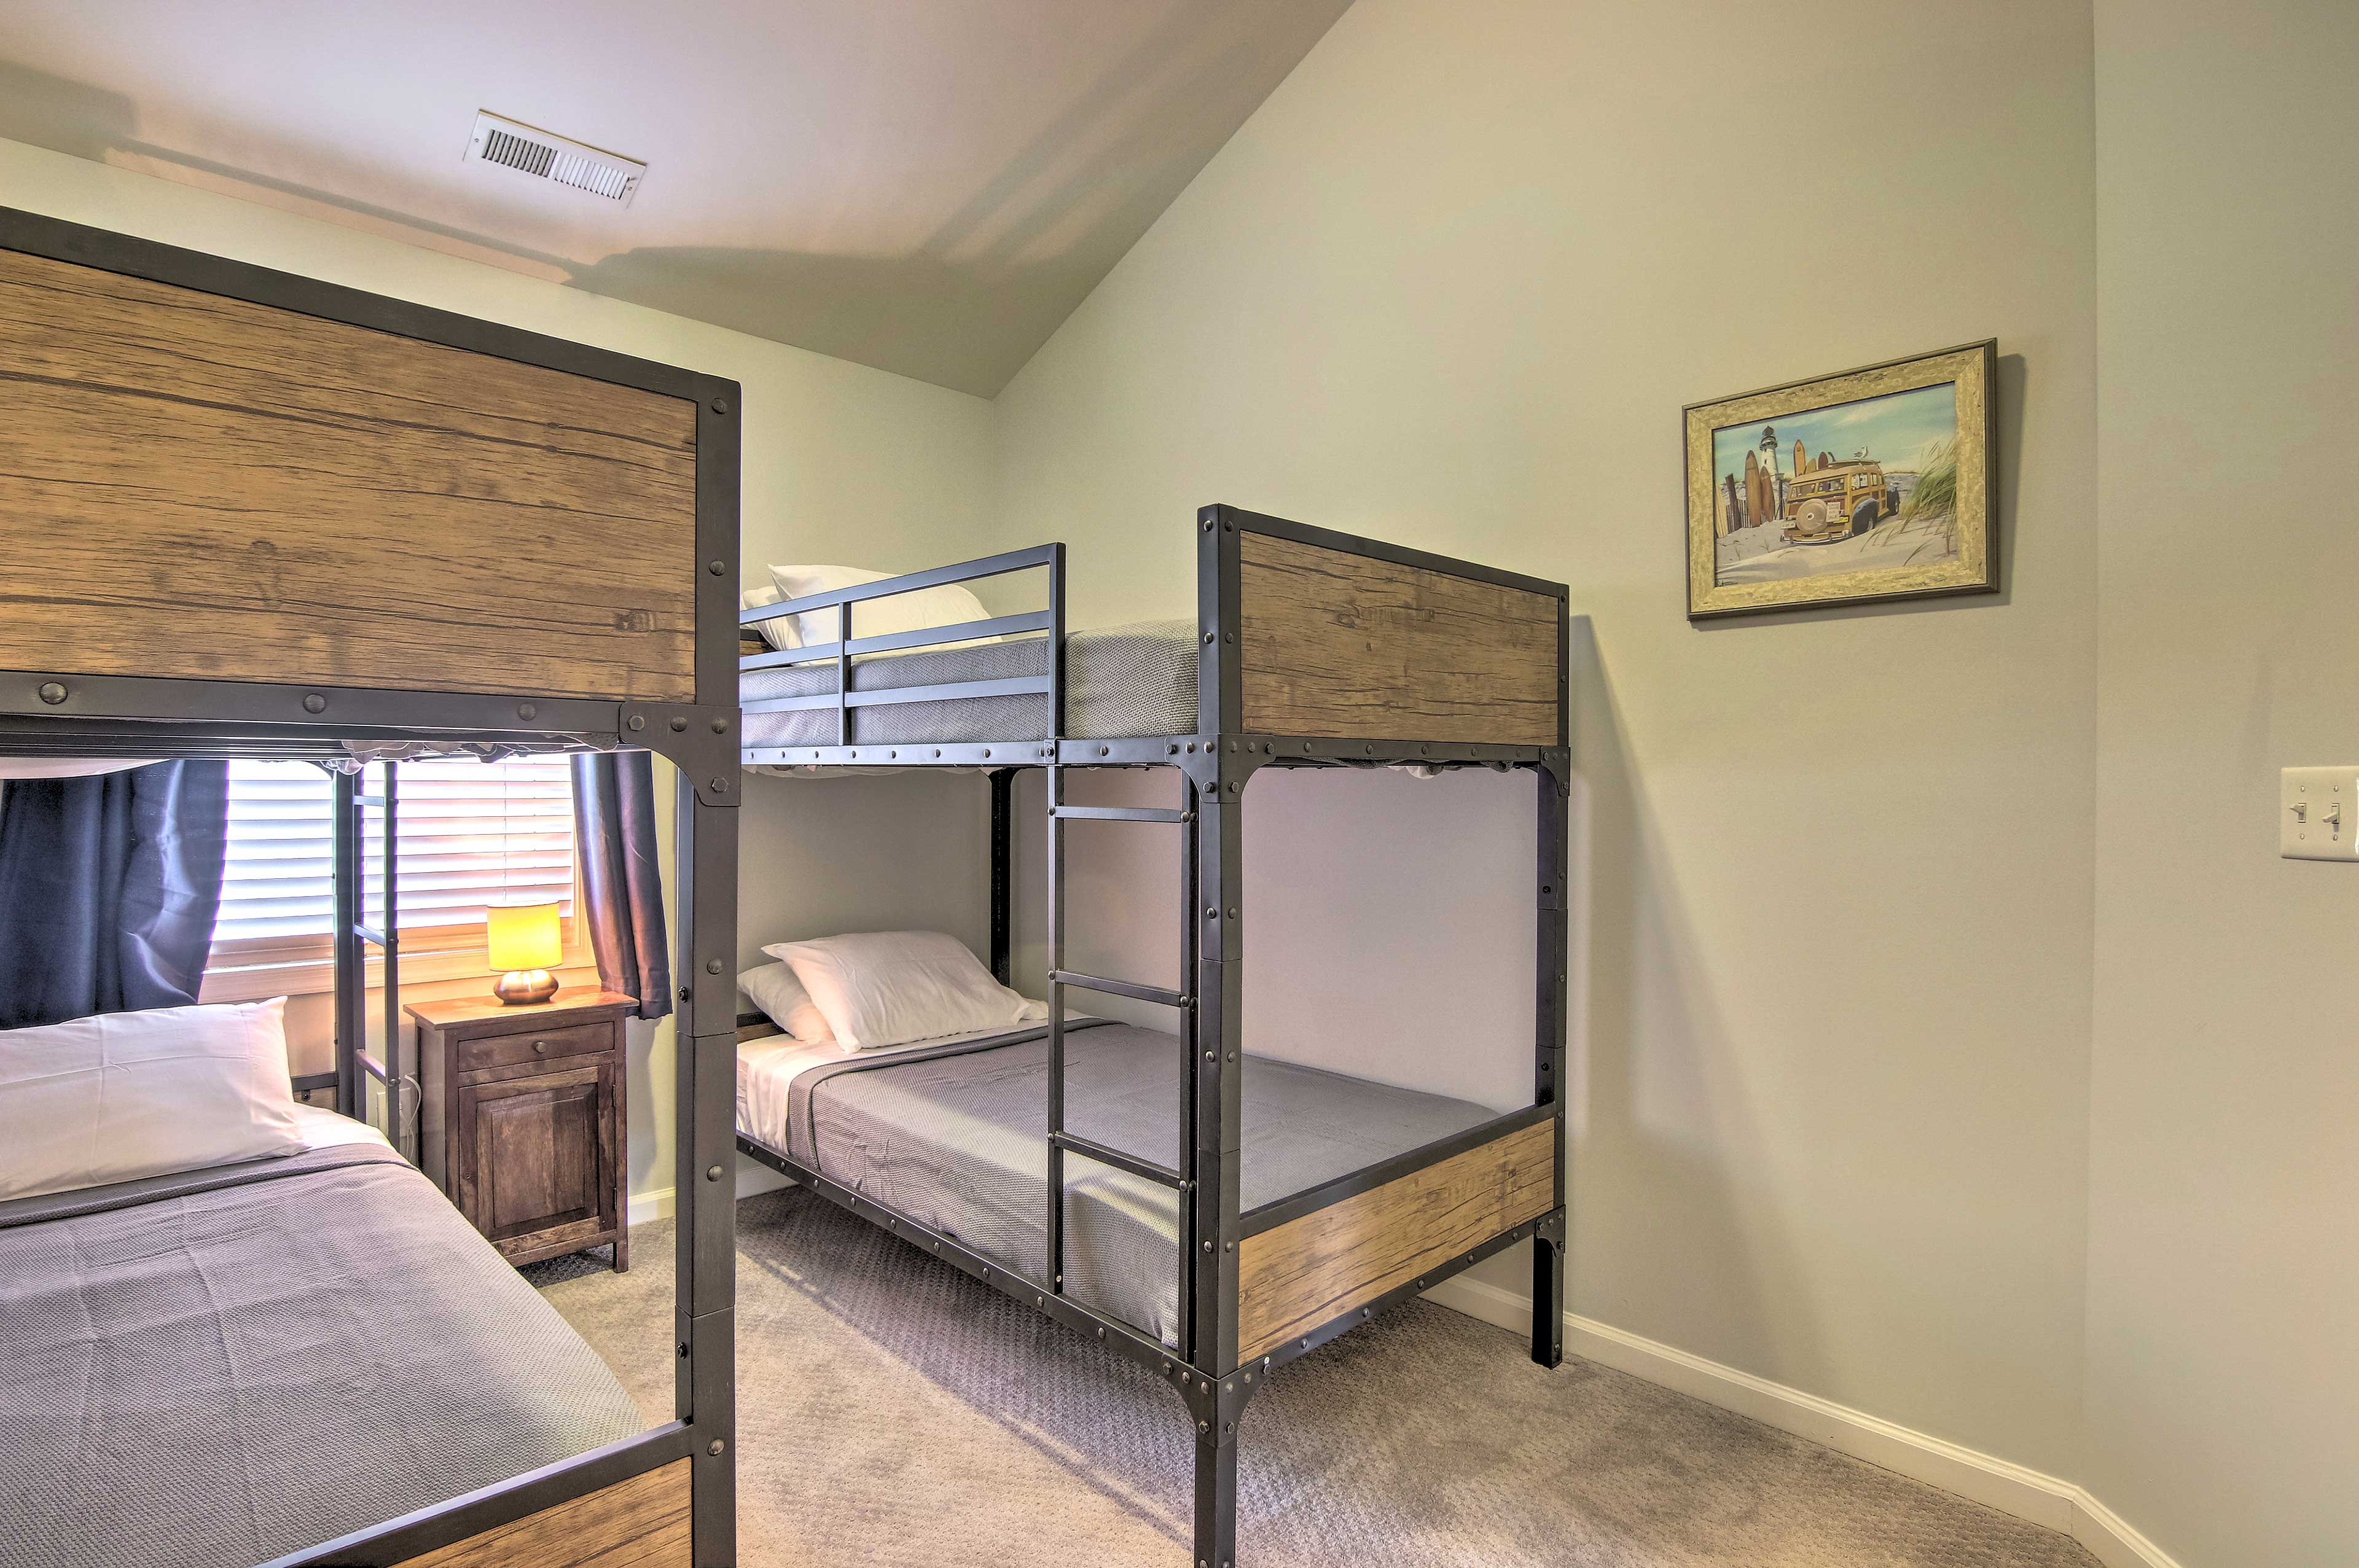 This bedroom offers a set of bunk beds.